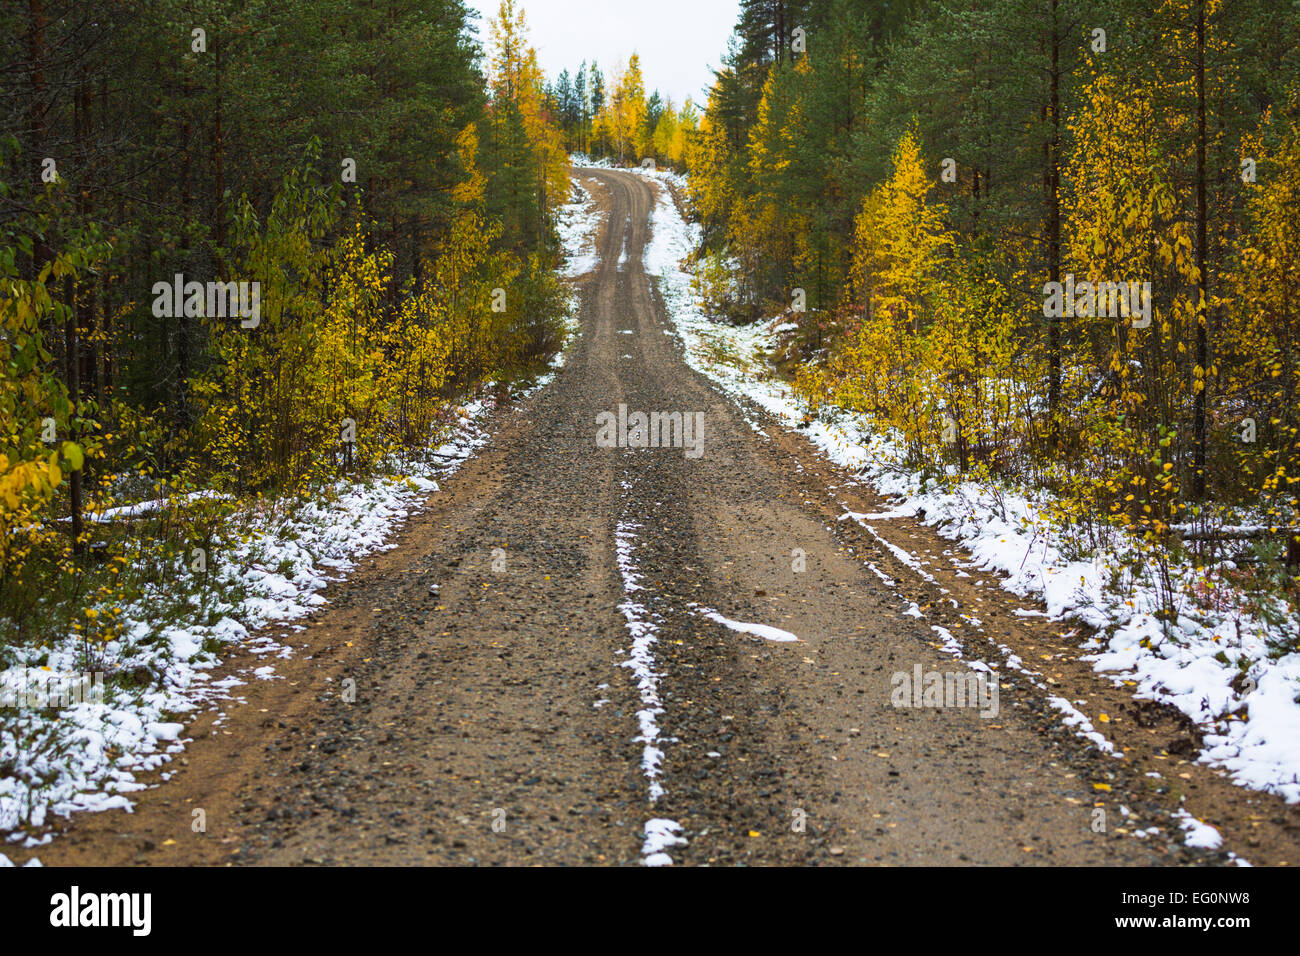 Road in forest with autumn yellow birches at the side and little snow has fallen, Kuhmo, Finland - Stock Image